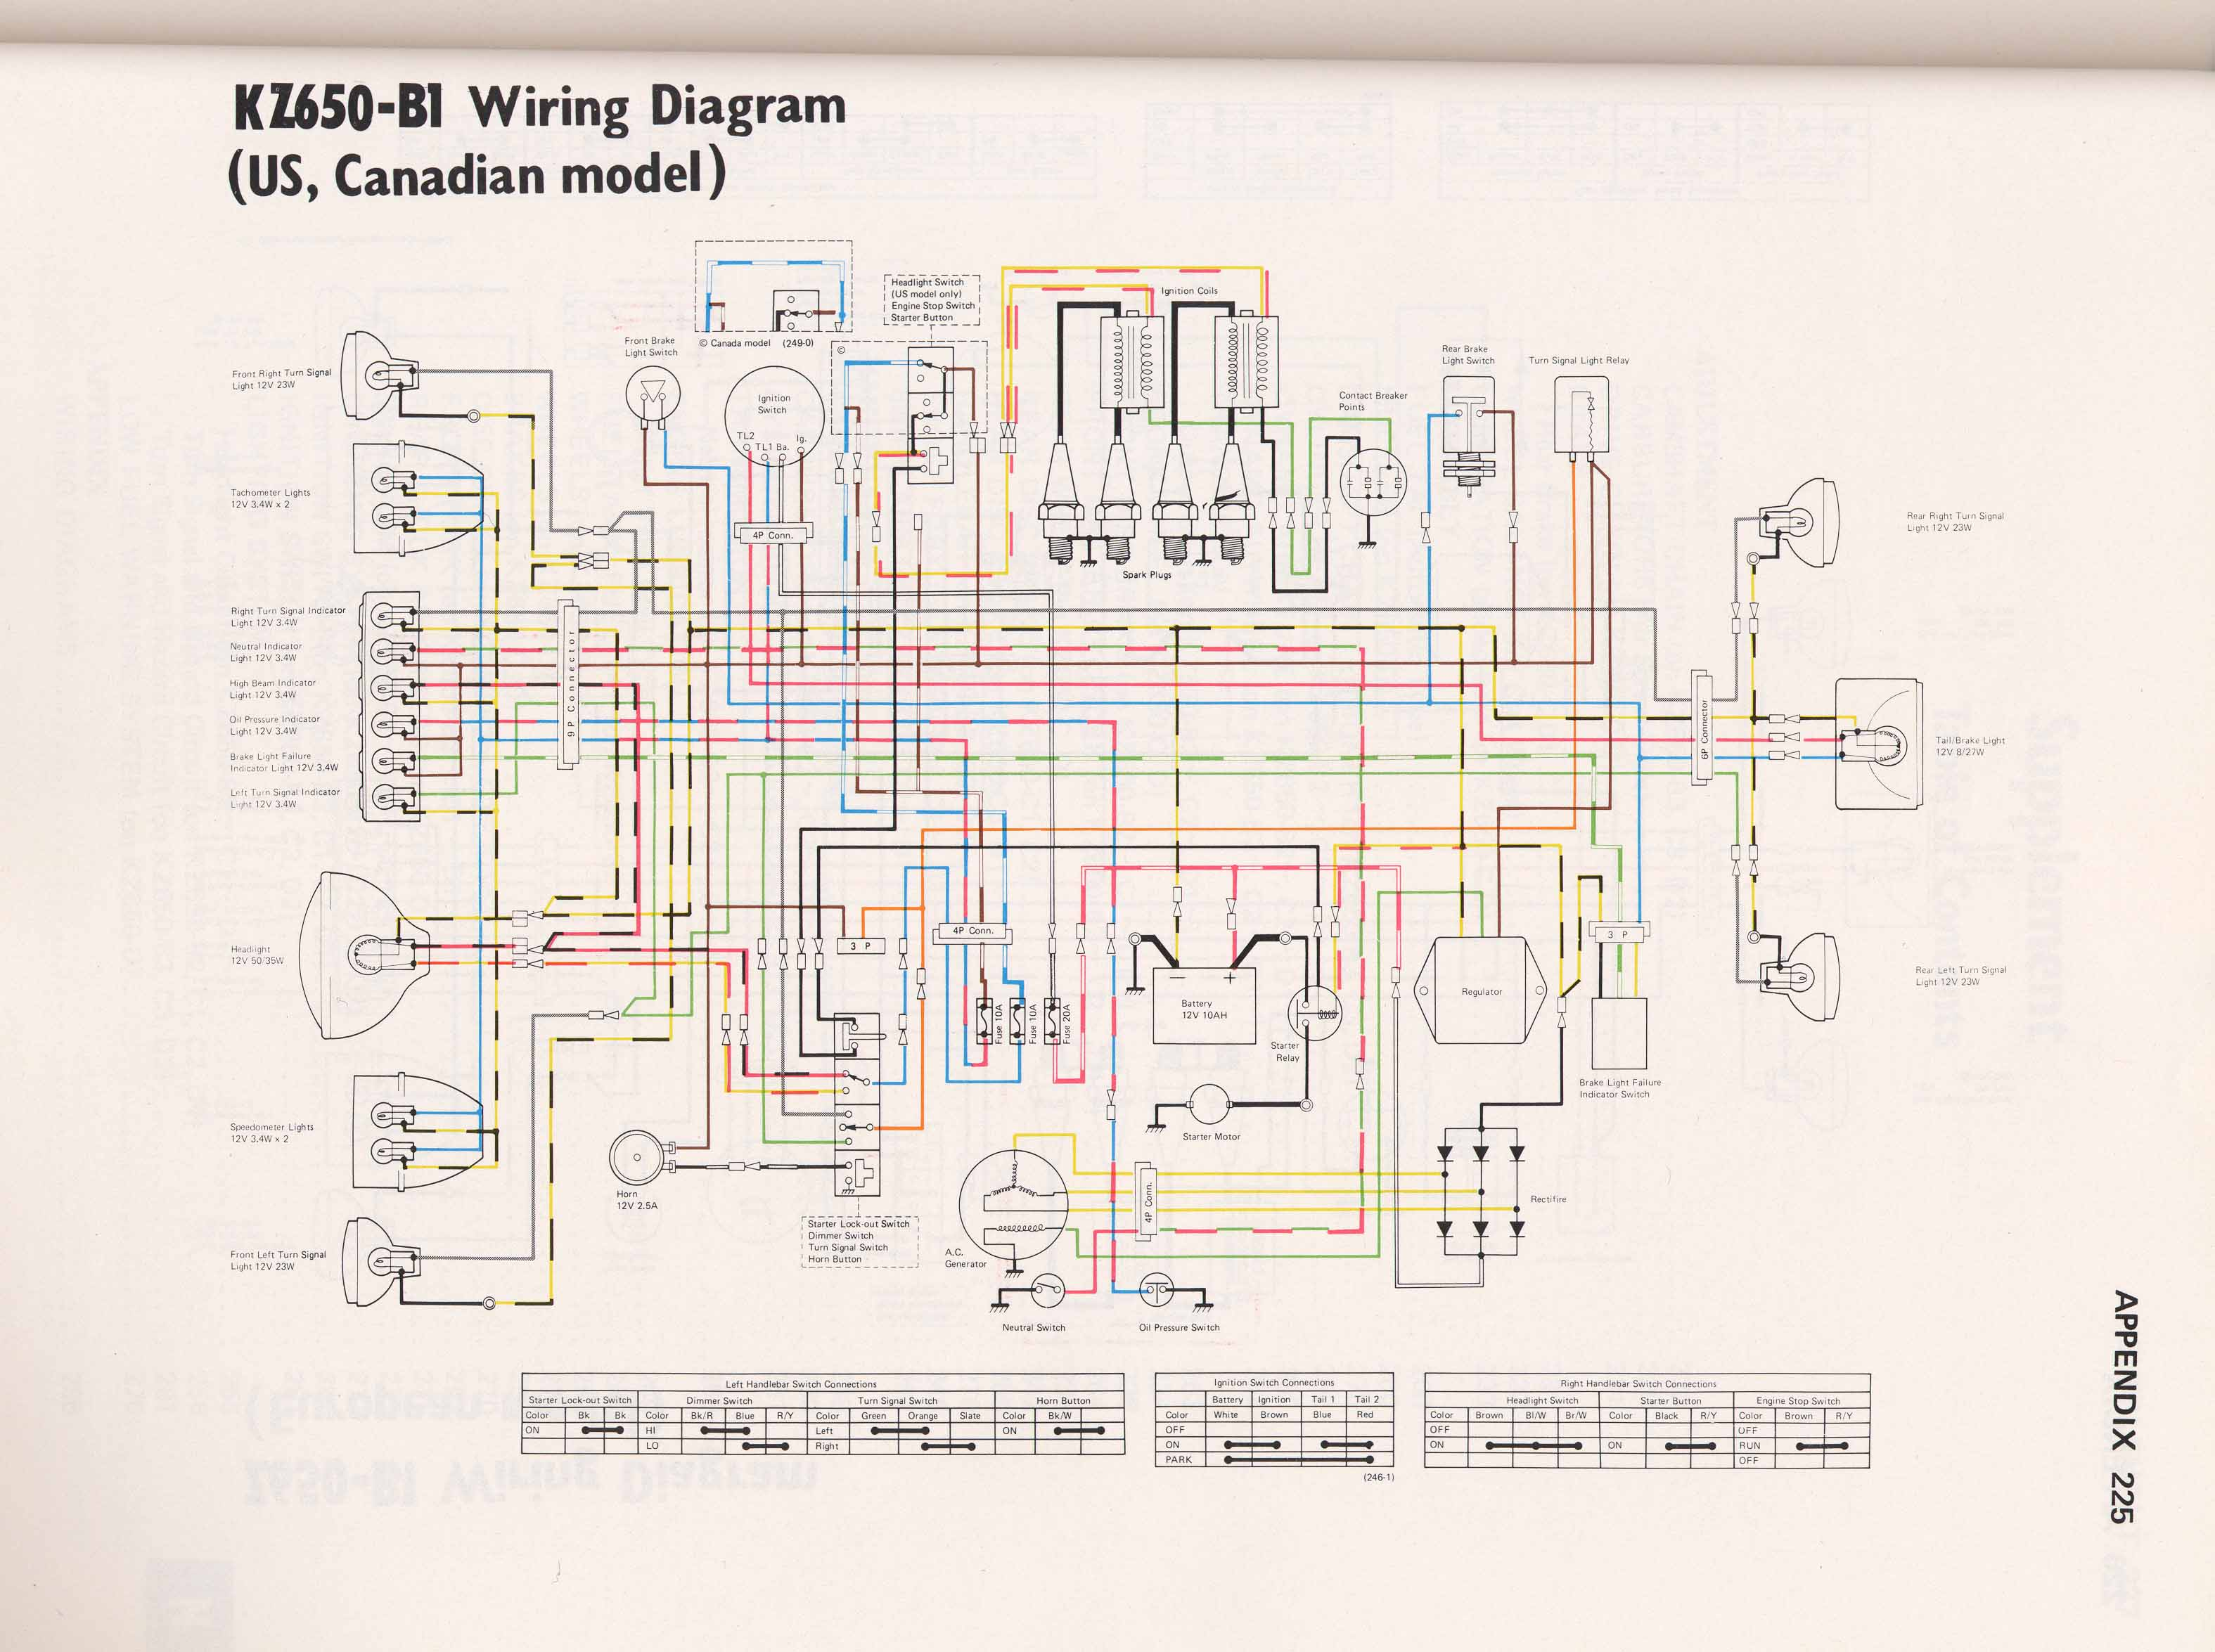 82 Ski Doo Wiring Diagram Library Rotax 335 Engine Kz650 Diagrams